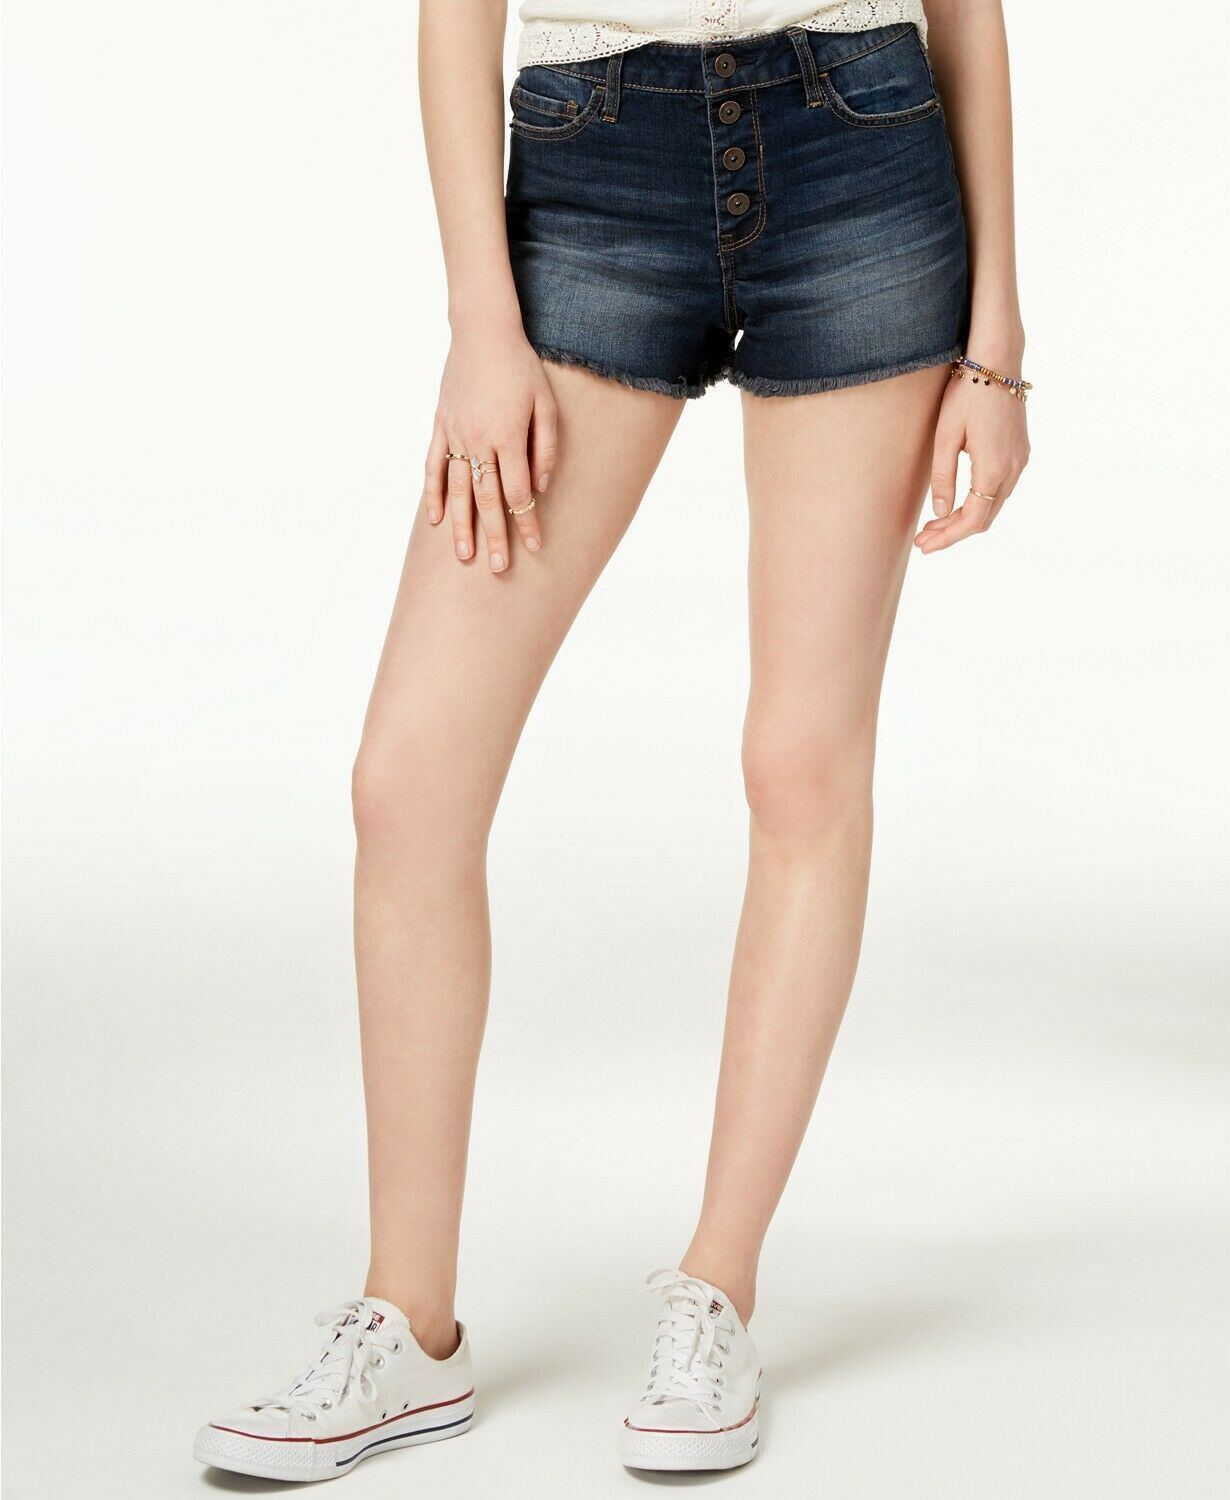 Primary image for American Rag Juniors' Button-Fly Denim Shorts ar juan blue